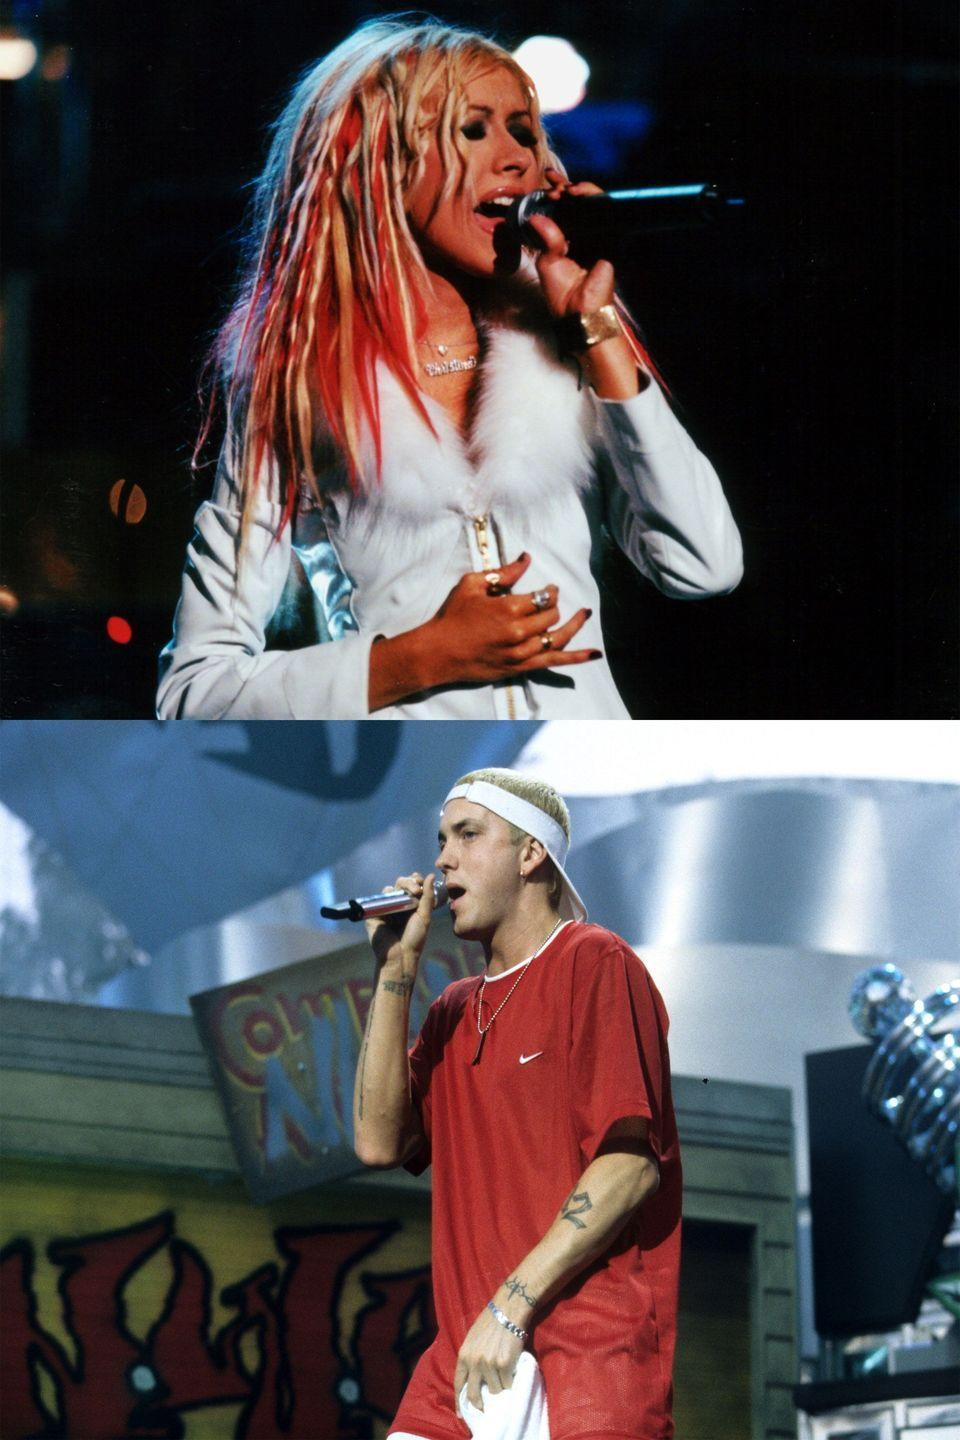 "<p>Eminem got real shady when he dropped this jaw-dropping line in ""The Real Slim Shady"": ""Christina Aguilera better switch me chairs, so I can sit next to Carson Daly and Fred Durst, and hear 'em argue over who she gave head to first."" Aguilera did not take kindly to the accusation, <a href=""http://www.mtv.com/news/821531/correction-aguilera-responds-to-eminem/"" rel=""nofollow noopener"" target=""_blank"" data-ylk=""slk:telling MTV News"" class=""link rapid-noclick-resp"">telling MTV News</a>, ""It's disgusting and offensive and above all it's not true."" Two years later, Aguilera released the feminist anthem ""Can't Hold Us Down,"" which <a href=""http://www.nytimes.com/2002/09/08/arts/the-new-season-music-idol-returns-her-image-remade.html?pagewanted=all&src=pm"" rel=""nofollow noopener"" target=""_blank"" data-ylk=""slk:presumably references"" class=""link rapid-noclick-resp"">presumably references</a> Eminem when the pop star sings, ""It's sad you only get your fame through controversy.""</p>"